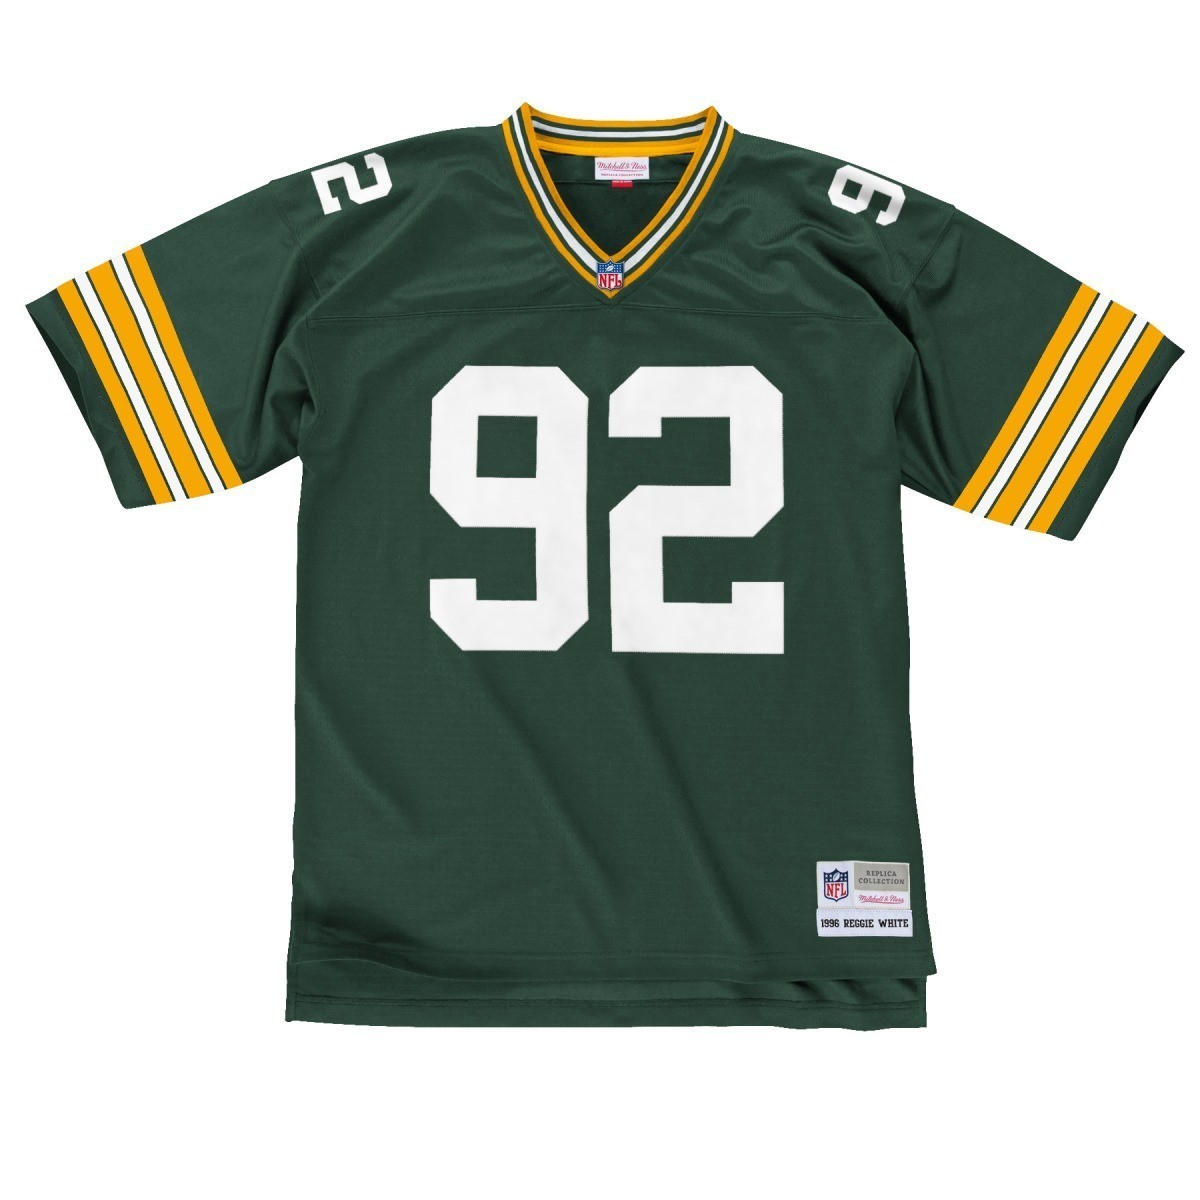 e1a8af49 Details about Reggie White Green Bay Packers NFL Mitchell & Ness Throwback  Jersey - Green